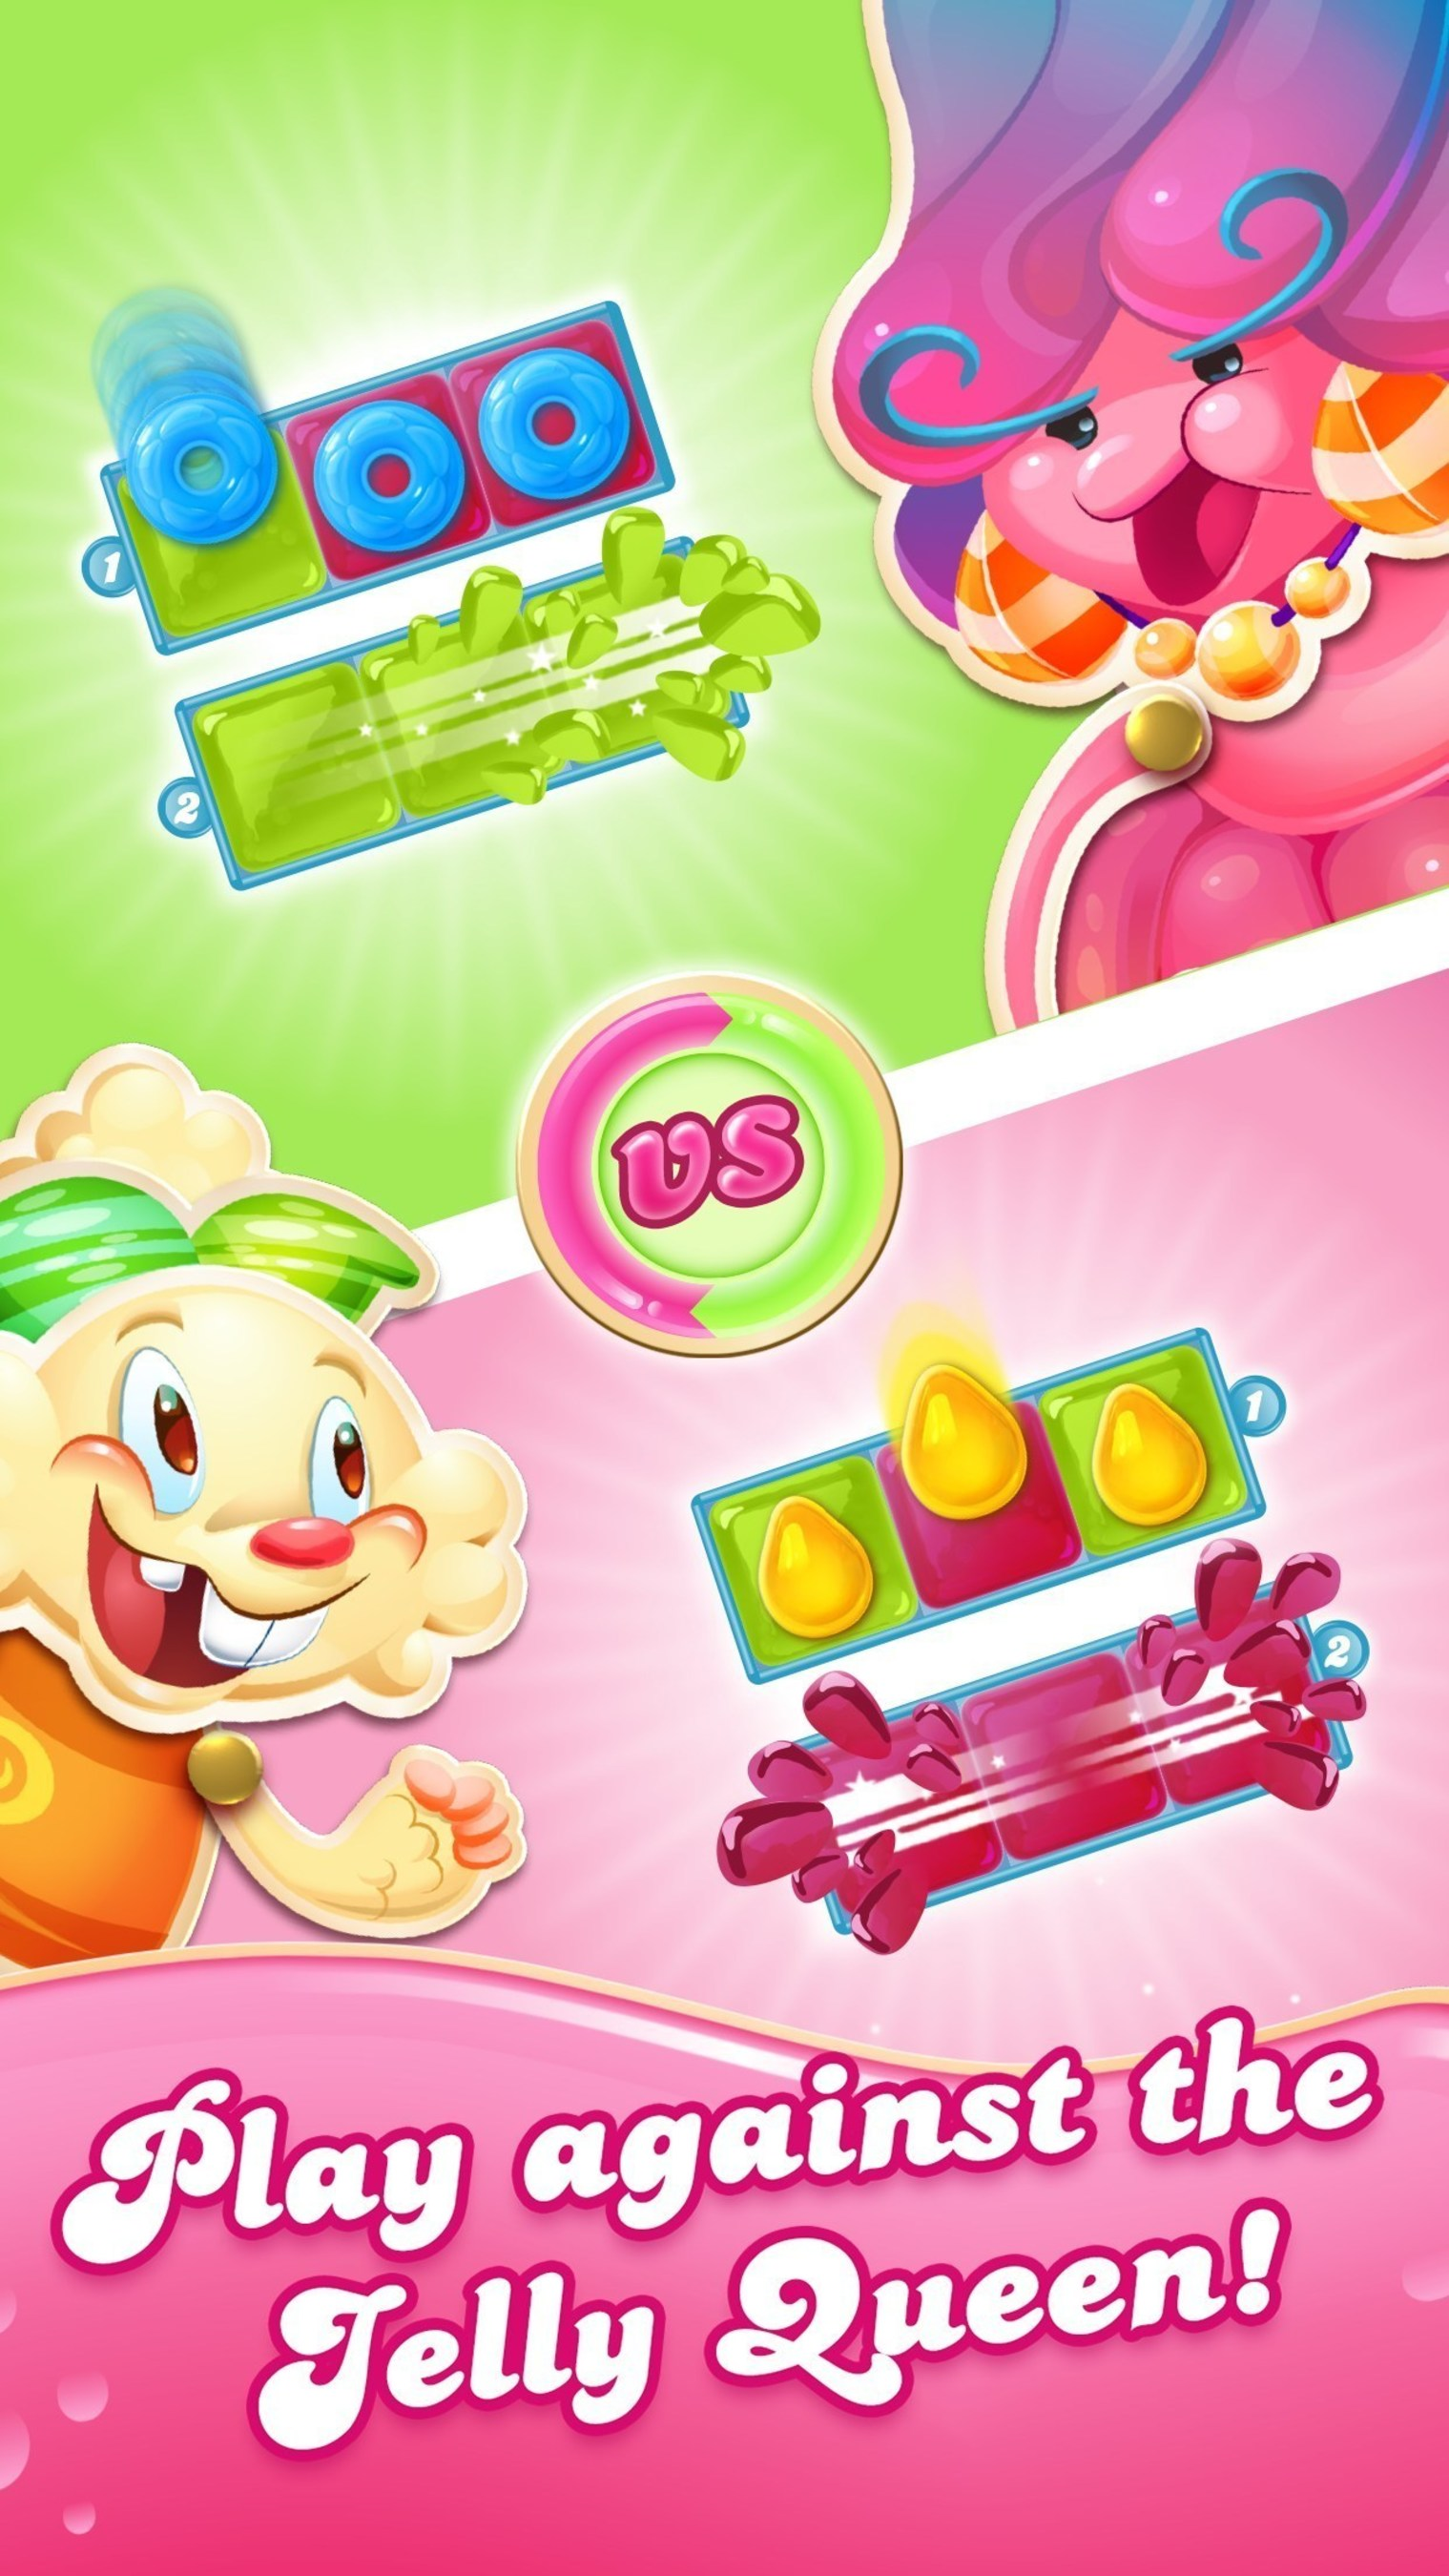 King Digital Entertainment launches Candy Crush Jelly Saga on mobile